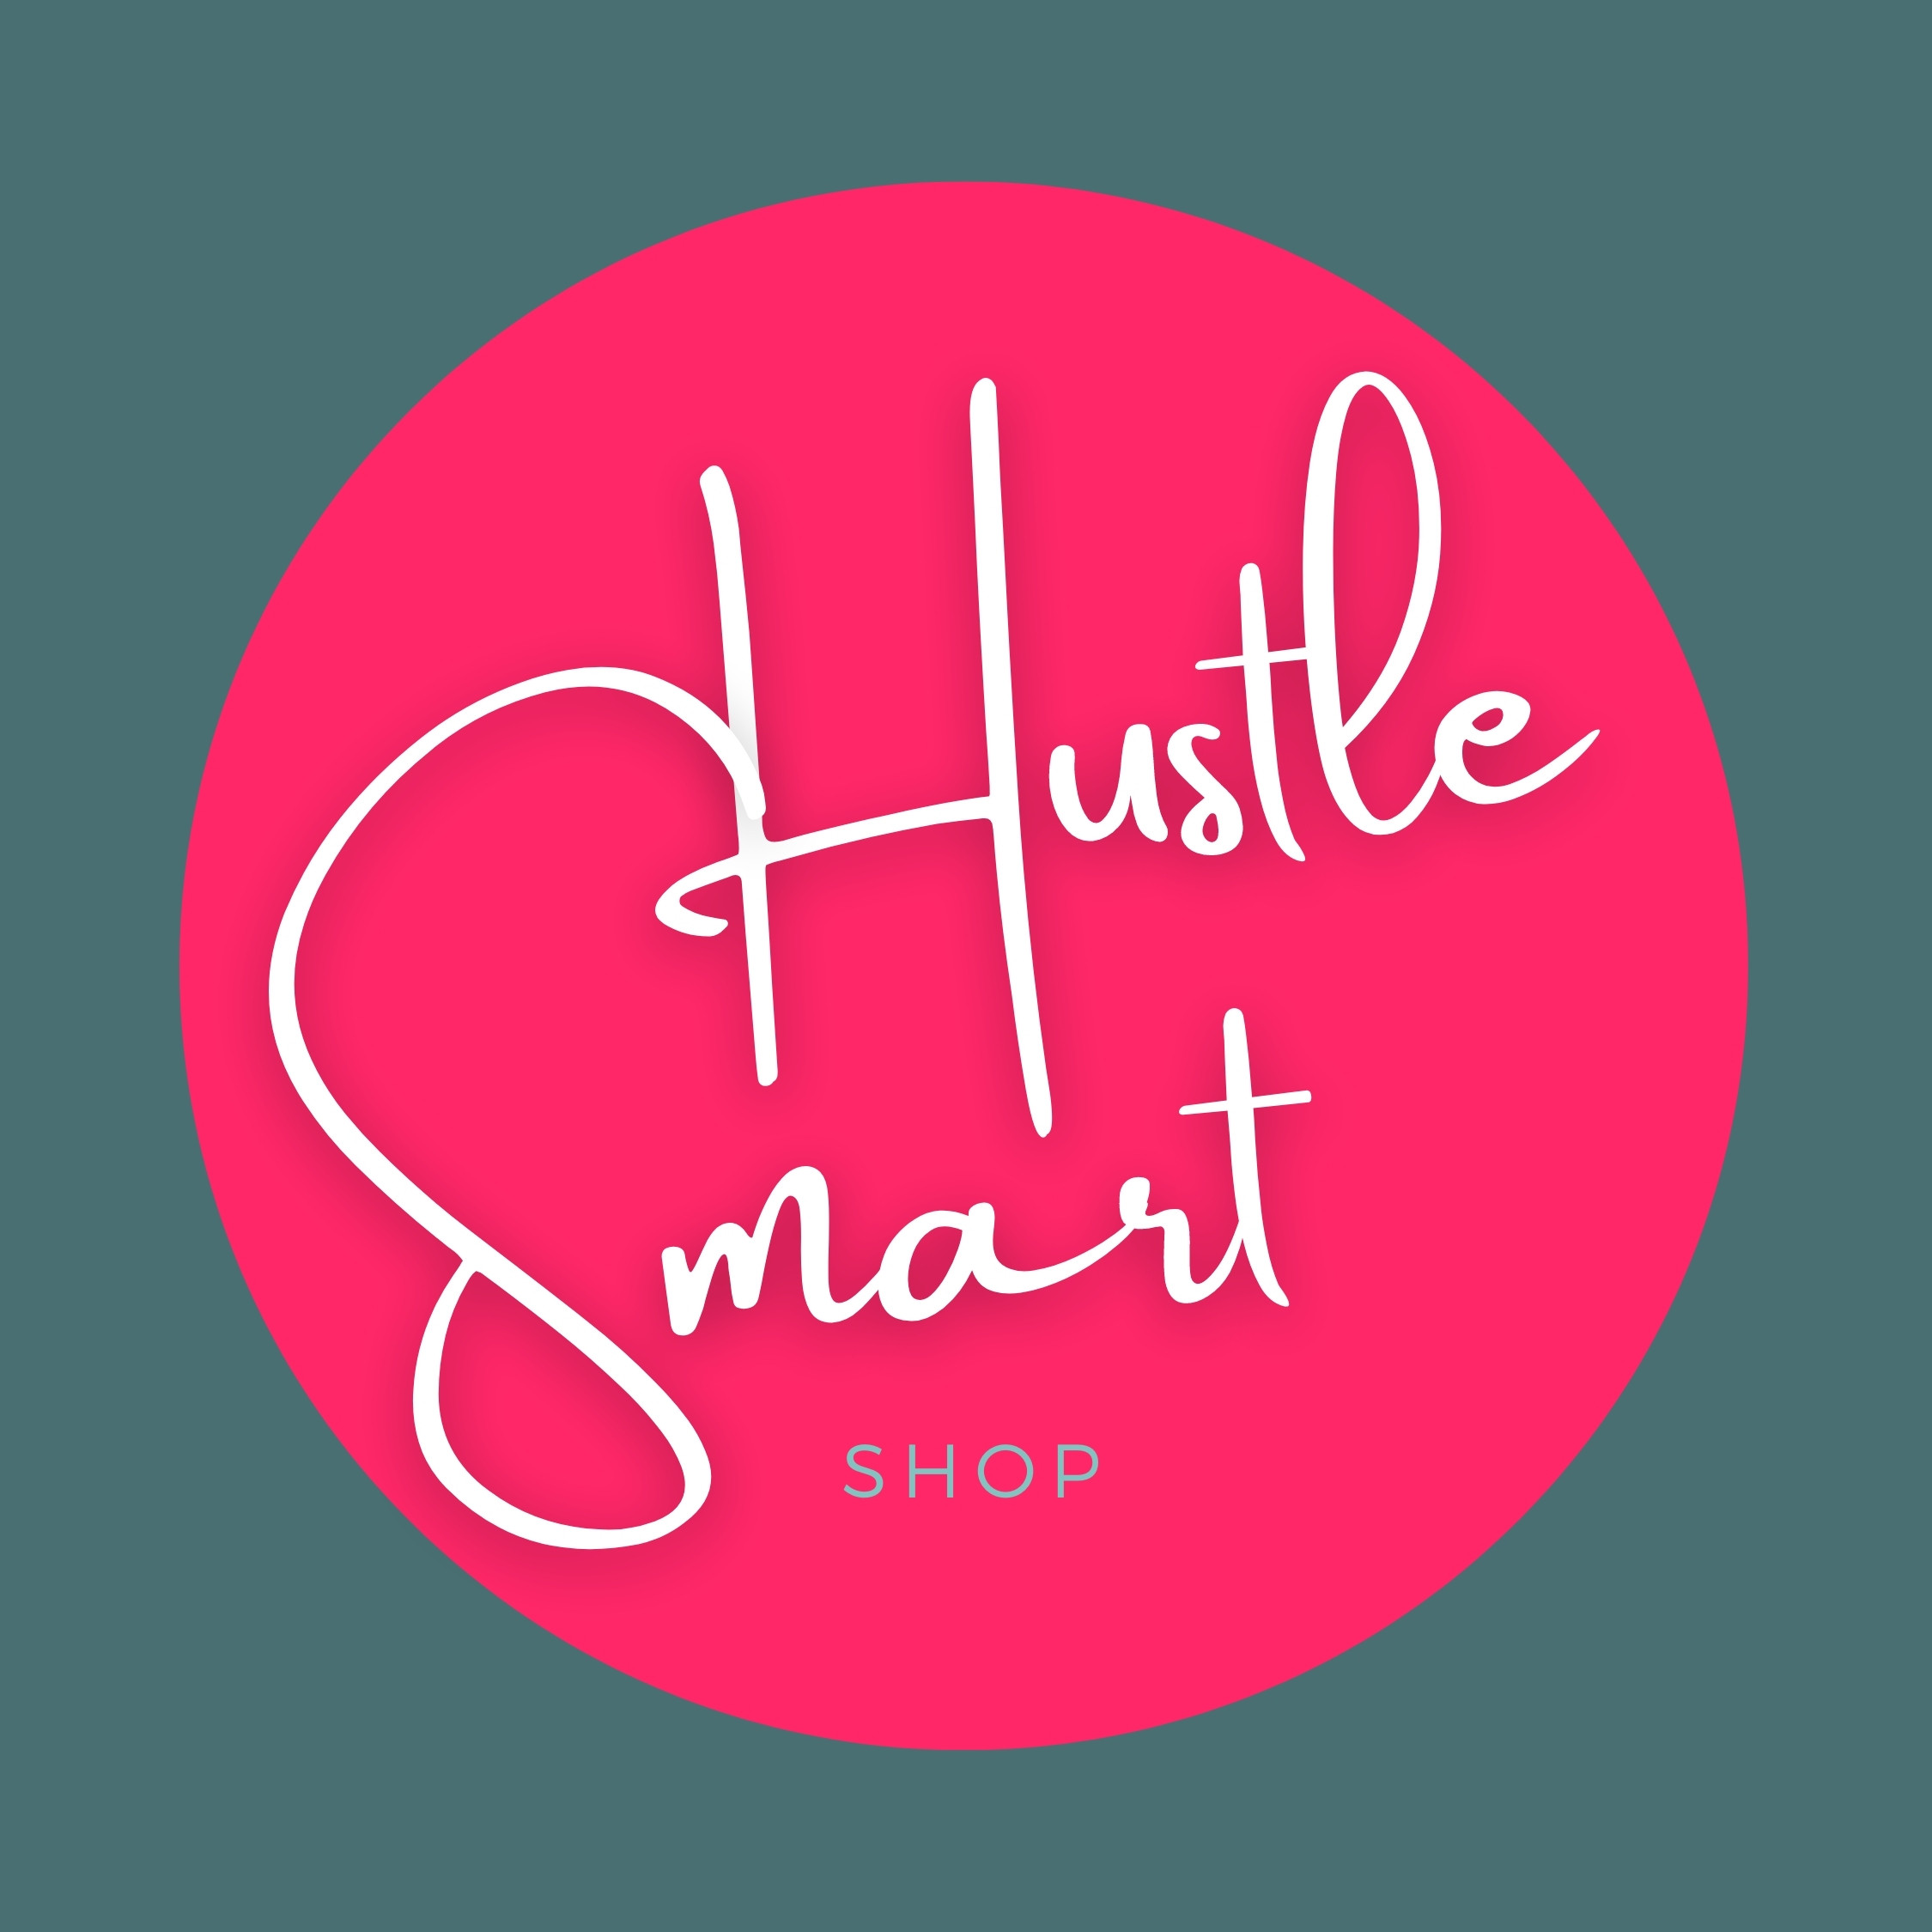 Hustle Smart Shop